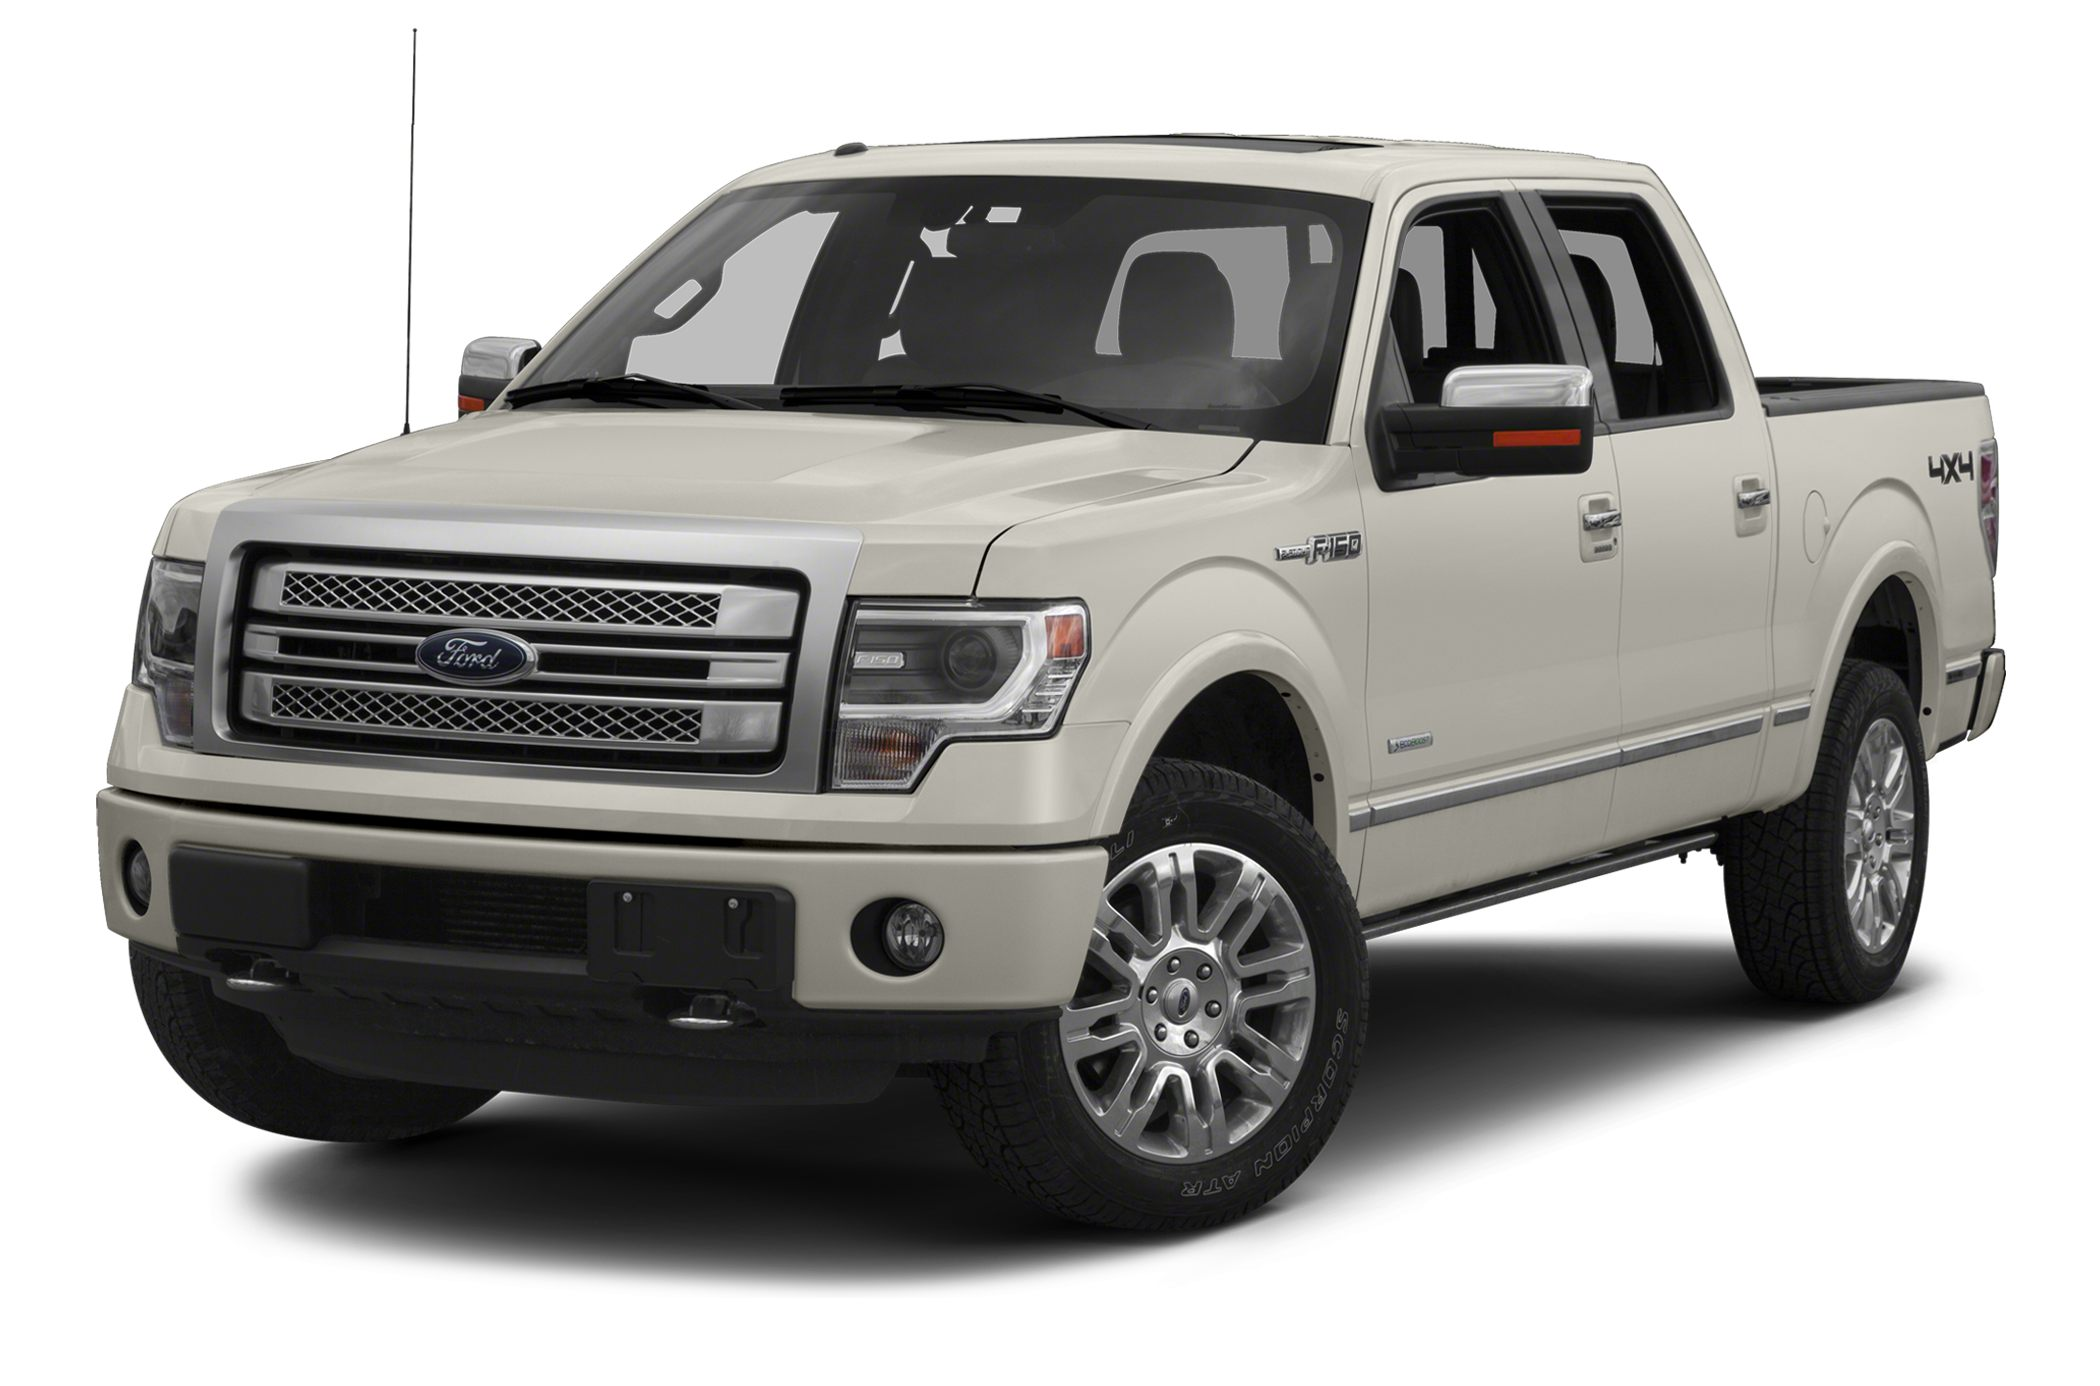 2013 Ford F150 Platinum Crew Cab Pickup for sale in Summersville for $47,999 with 6,906 miles